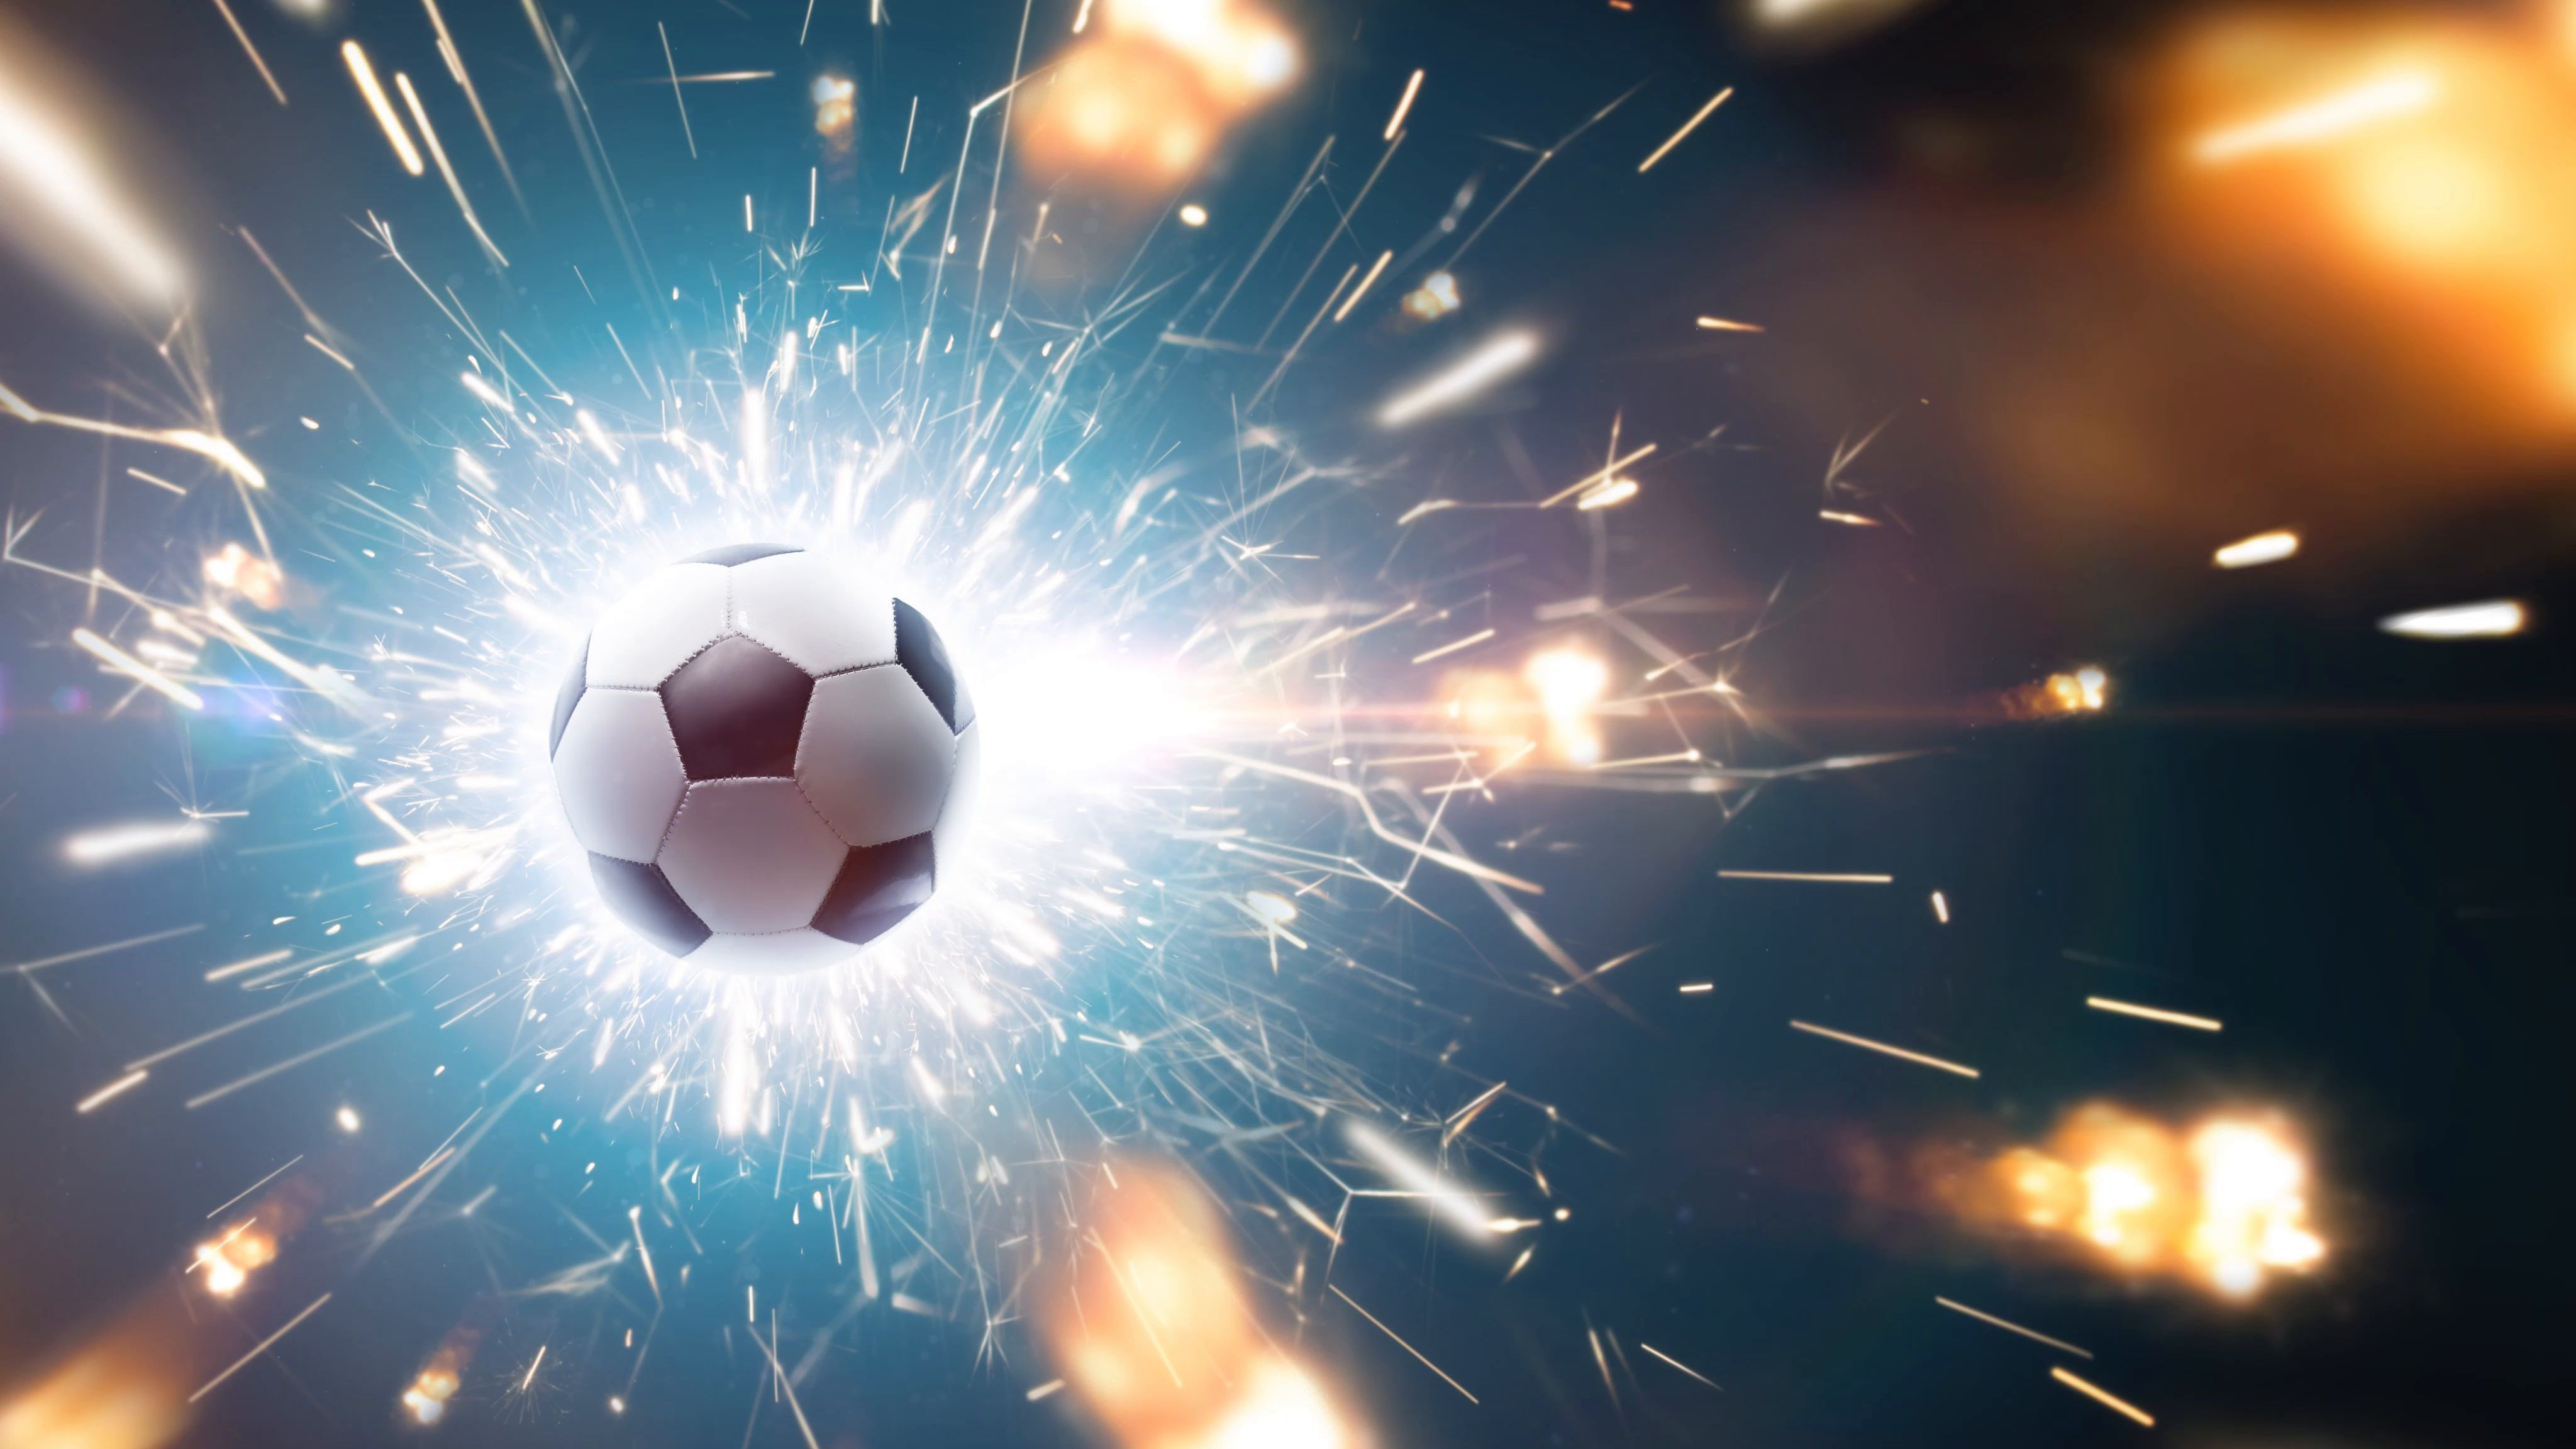 Soccer Ball With Fire Sparks In Action Stock Footage Fire Ball Soccer Sparks Soccer Ball Sports Wallpapers Ball